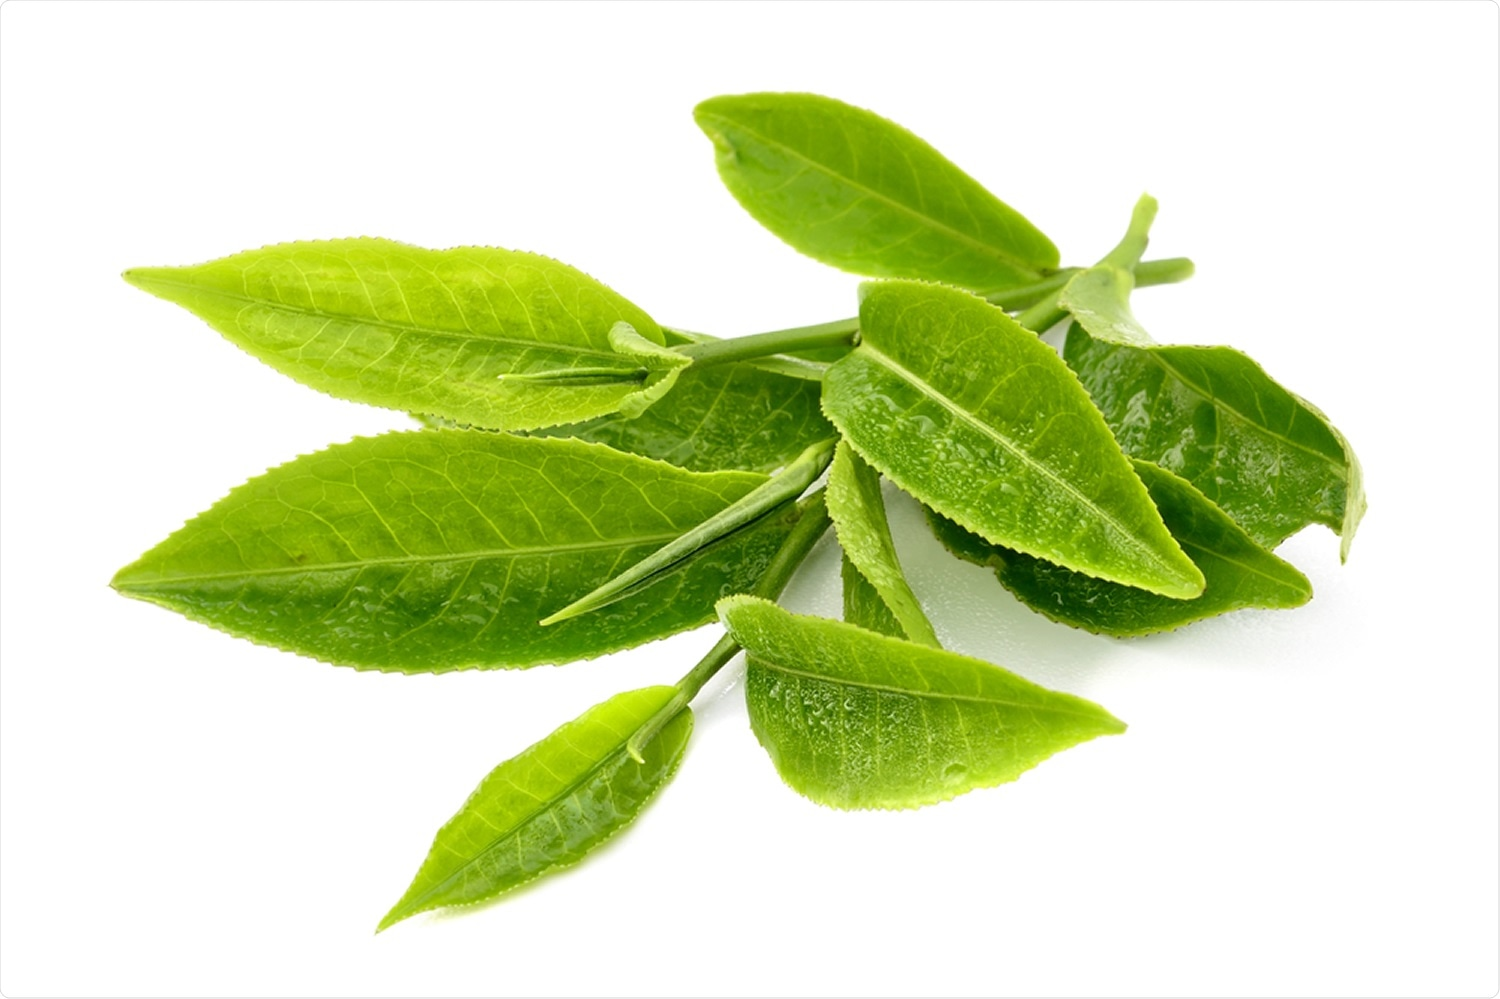 Study: The green tea catechin EGCG provides proof-of-concept for a pan-coronavirus entry inhibitor. Image Credit: Scorpp / Shutterstock